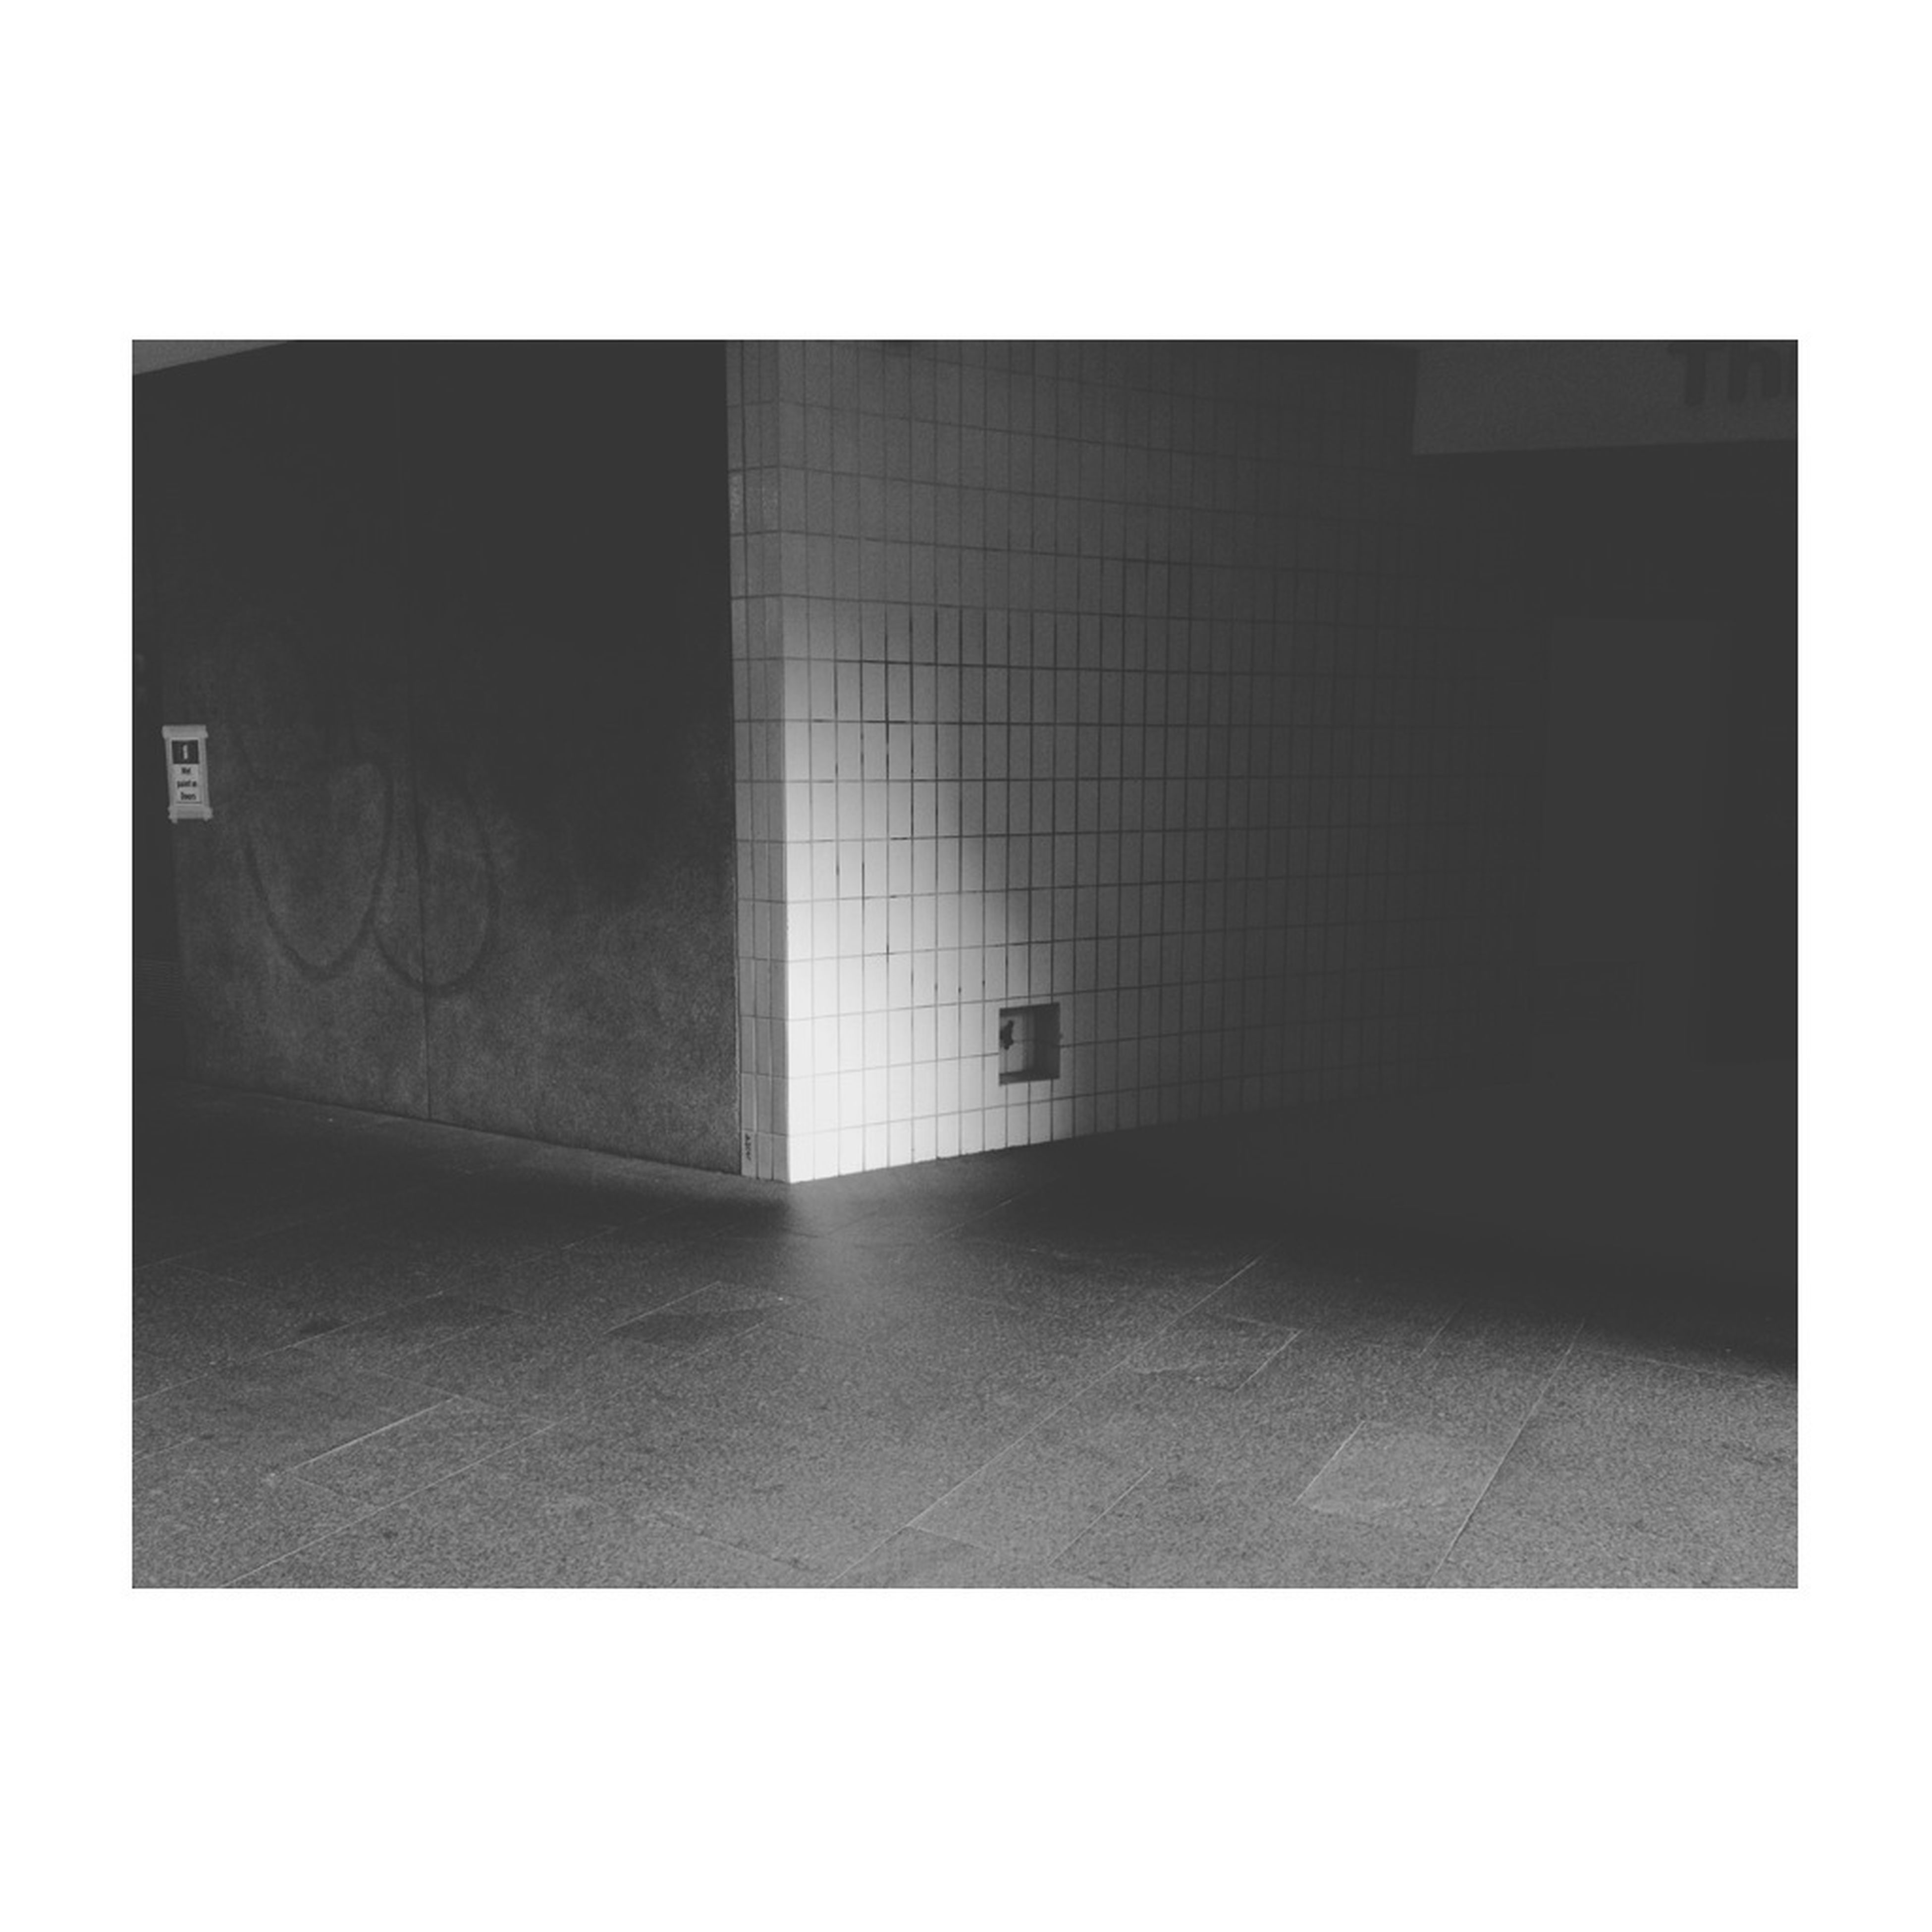 transfer print, architecture, built structure, auto post production filter, wall - building feature, indoors, wall, building exterior, empty, window, door, flooring, building, tiled floor, the way forward, absence, copy space, street, closed, no people